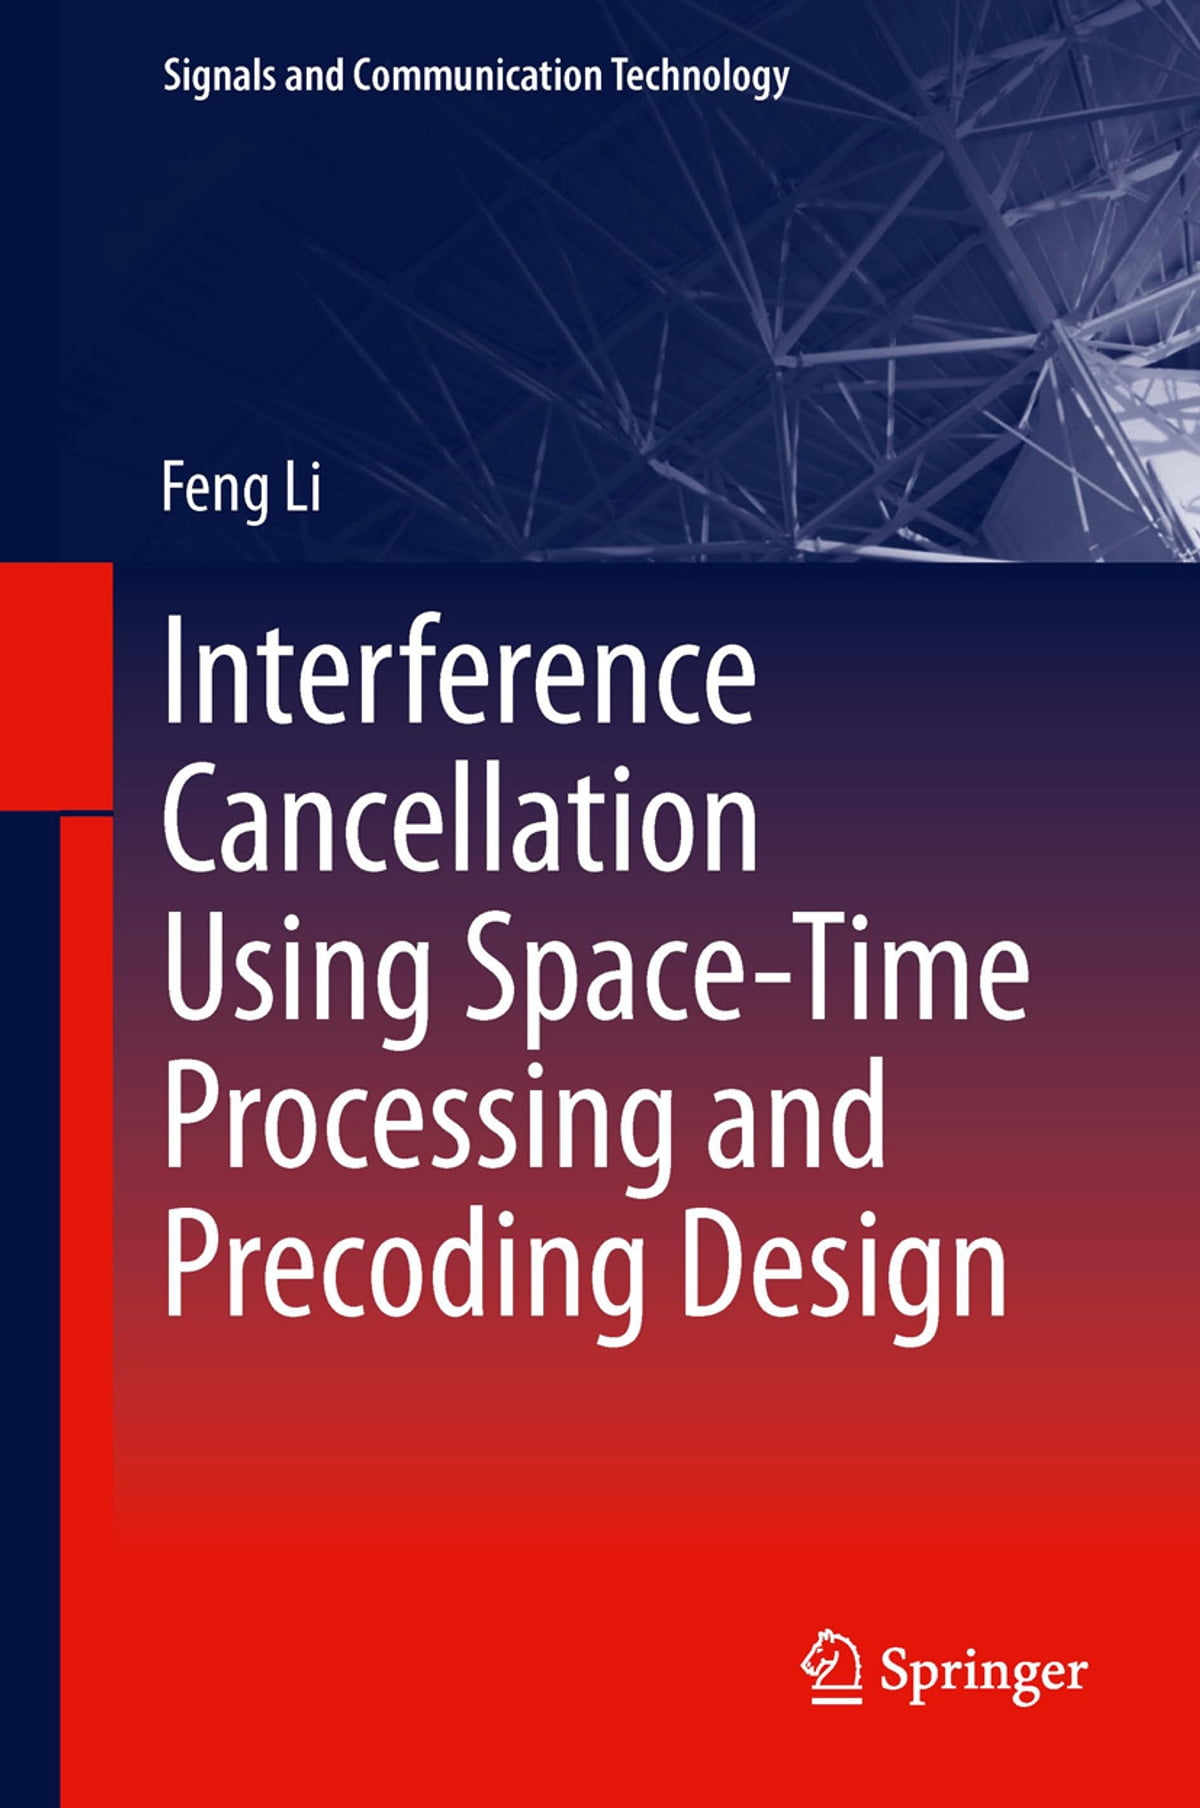 Interference Cancellation Using Space-Time Processing and Precoding Design  ebook by Feng Li - Rakuten Kobo